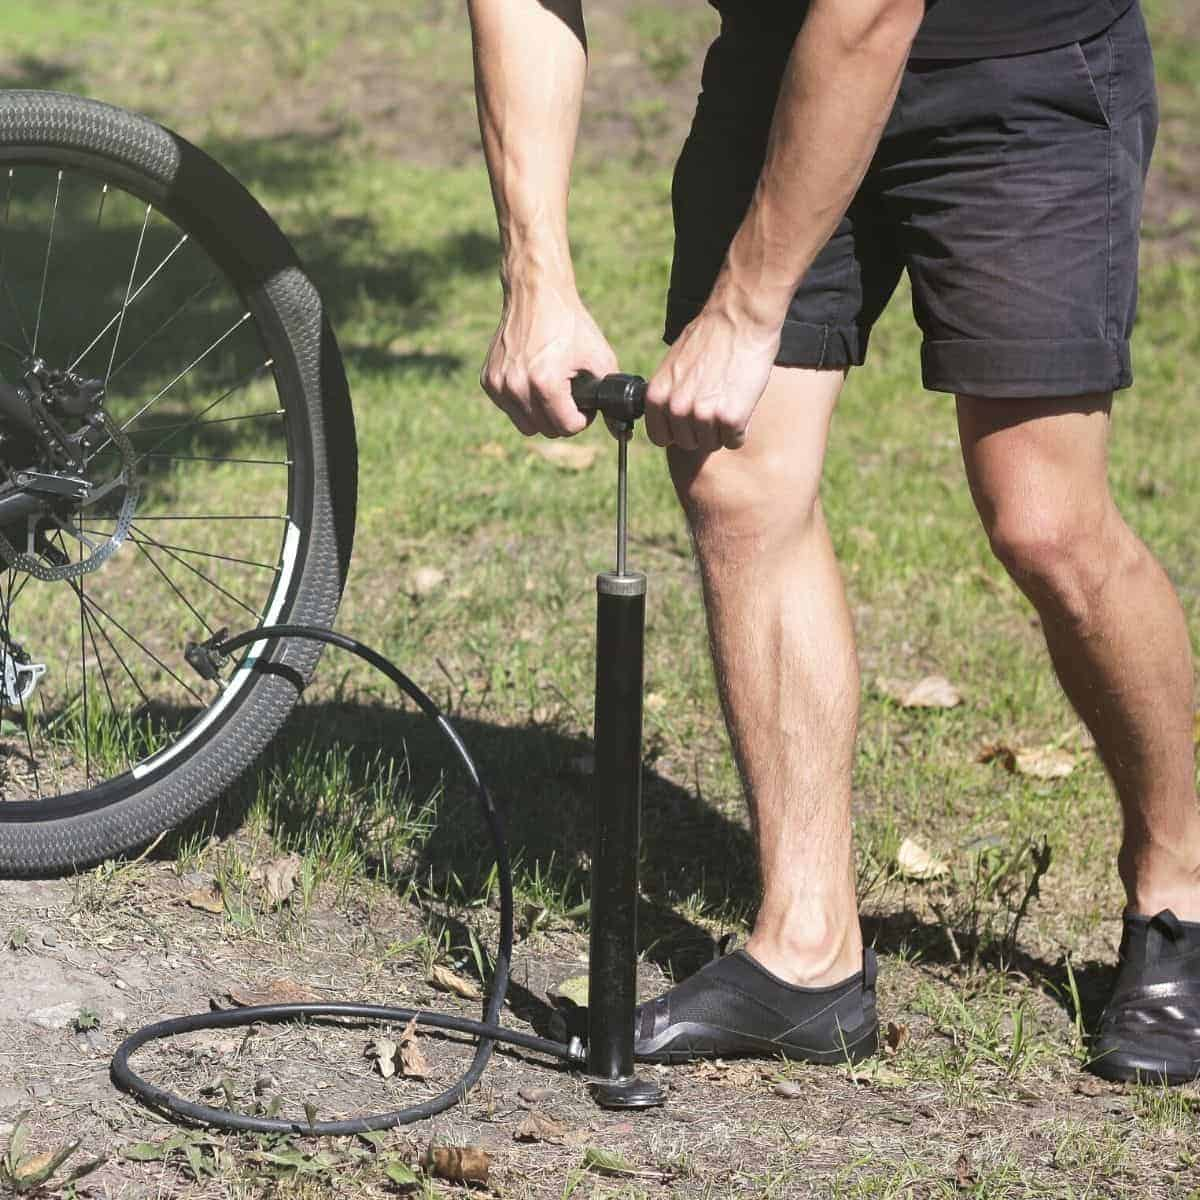 Person standing on grass and using a bike pump.